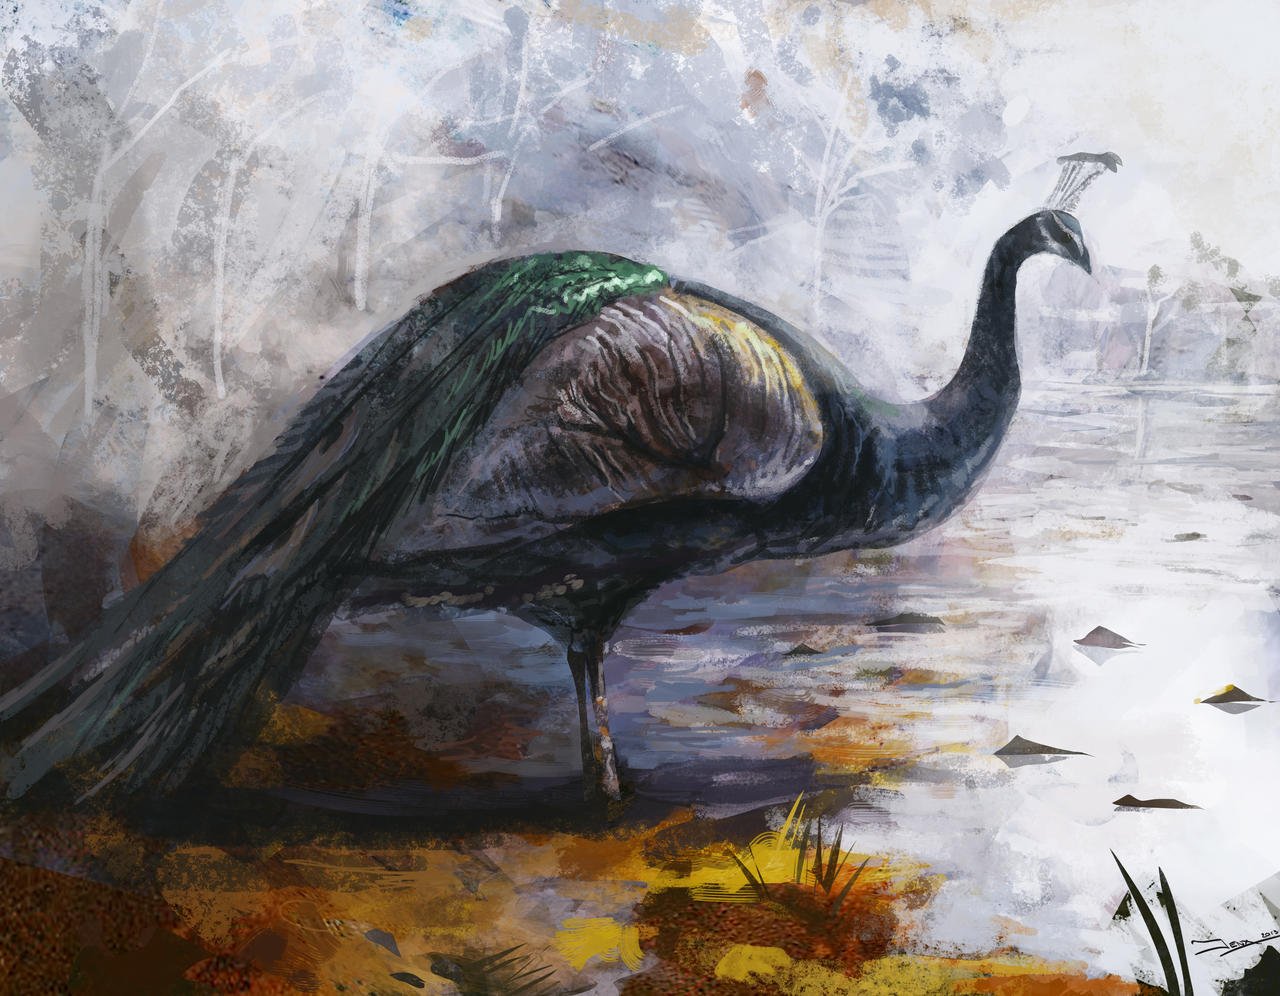 Peacock Speed Paint by Robjenx